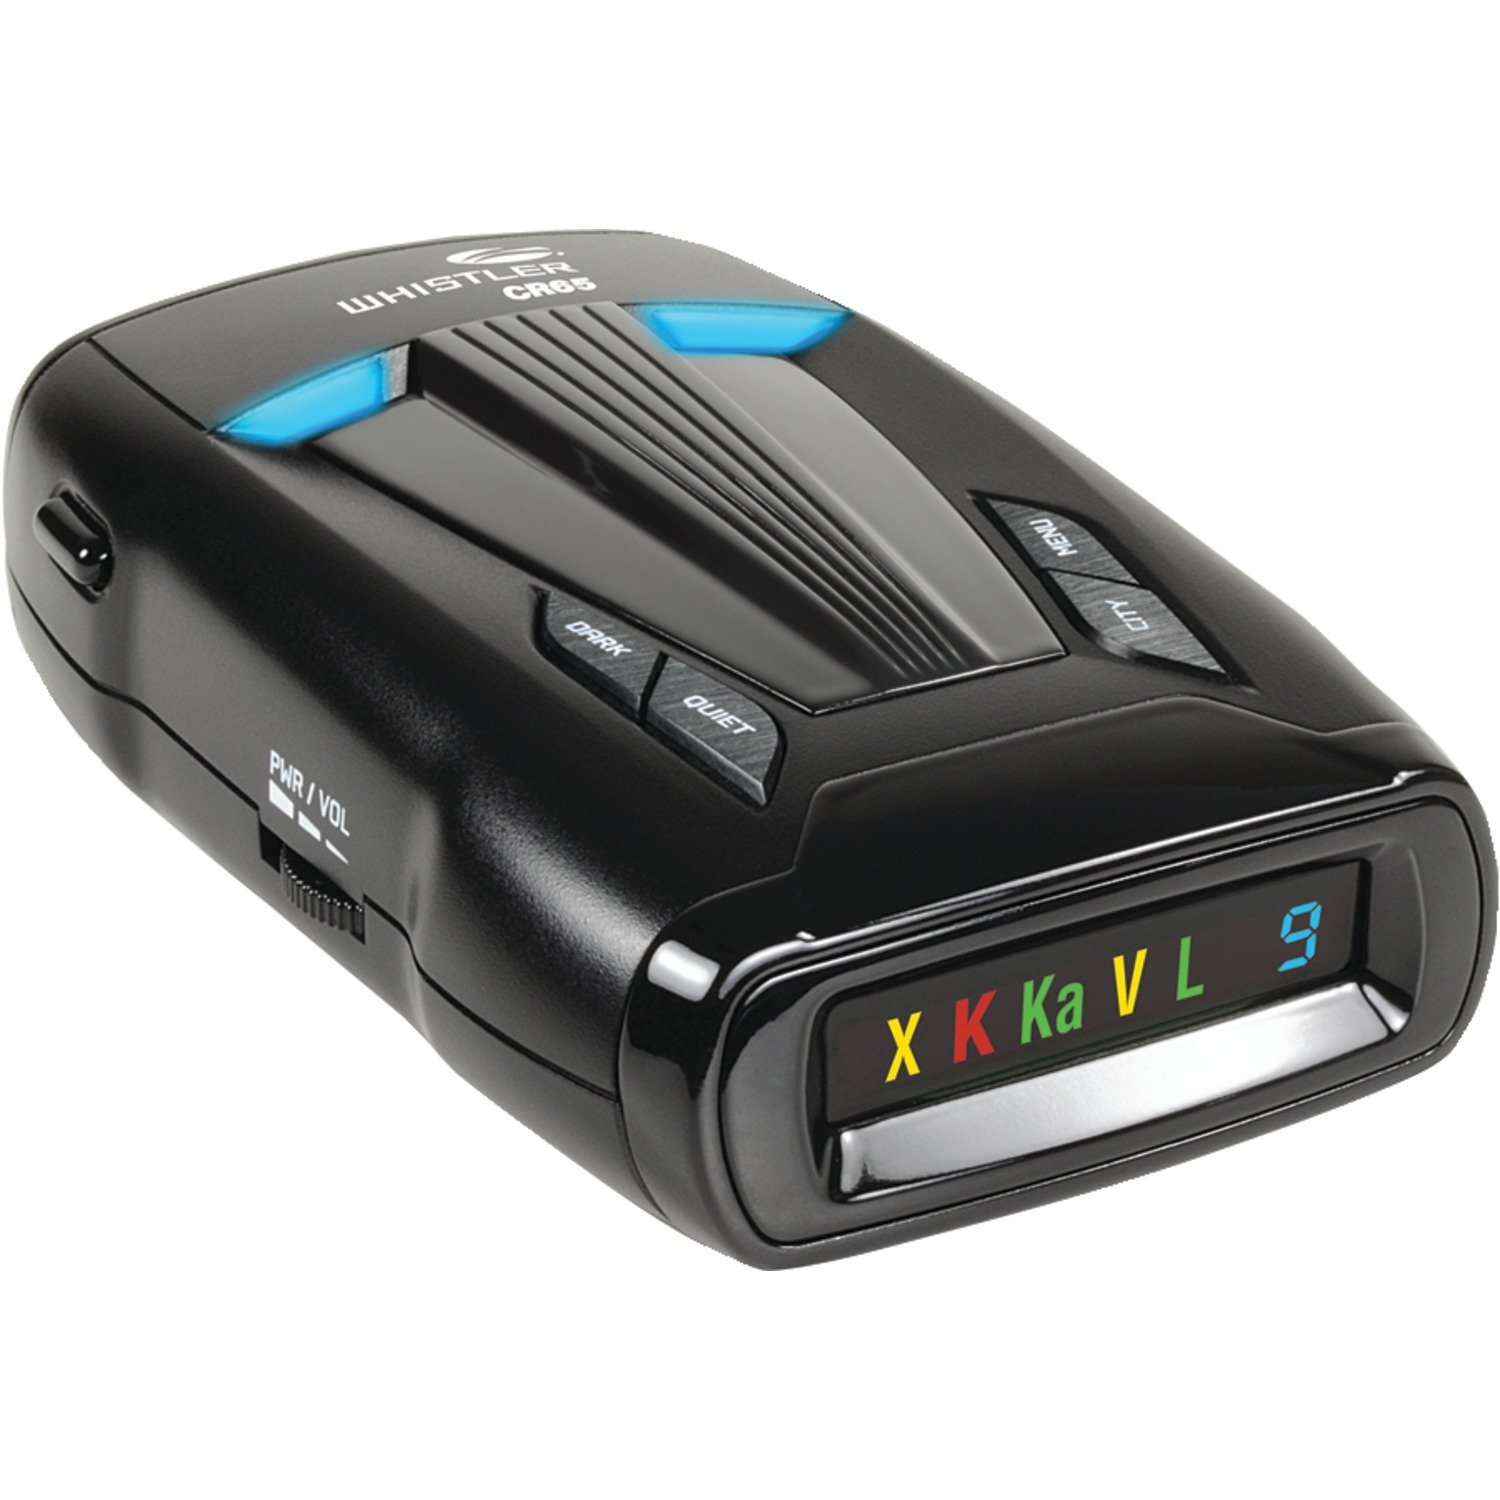 Whistler CR65 Laser-Radar Detector with Traffic Flow Signal Rejection